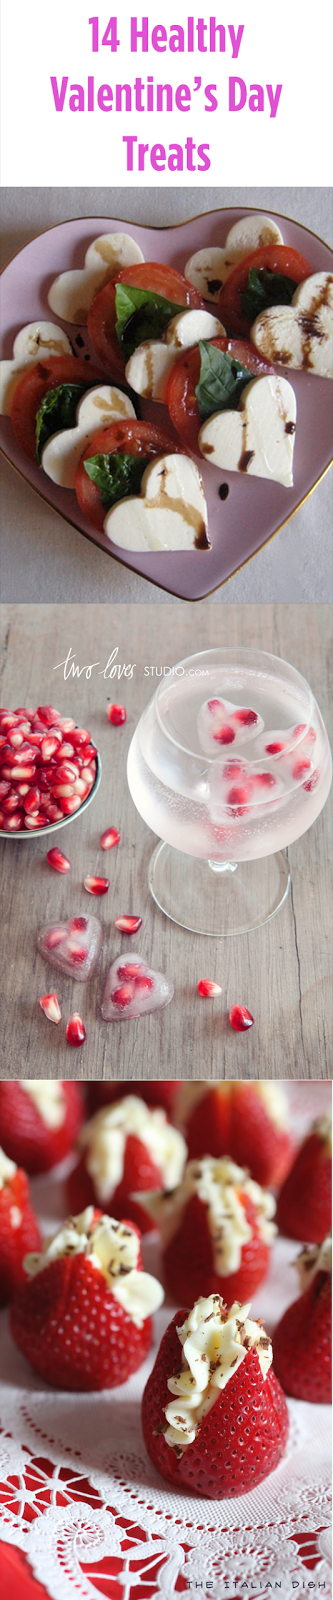 The Top 14 Healthiest Valentine's Day Treats